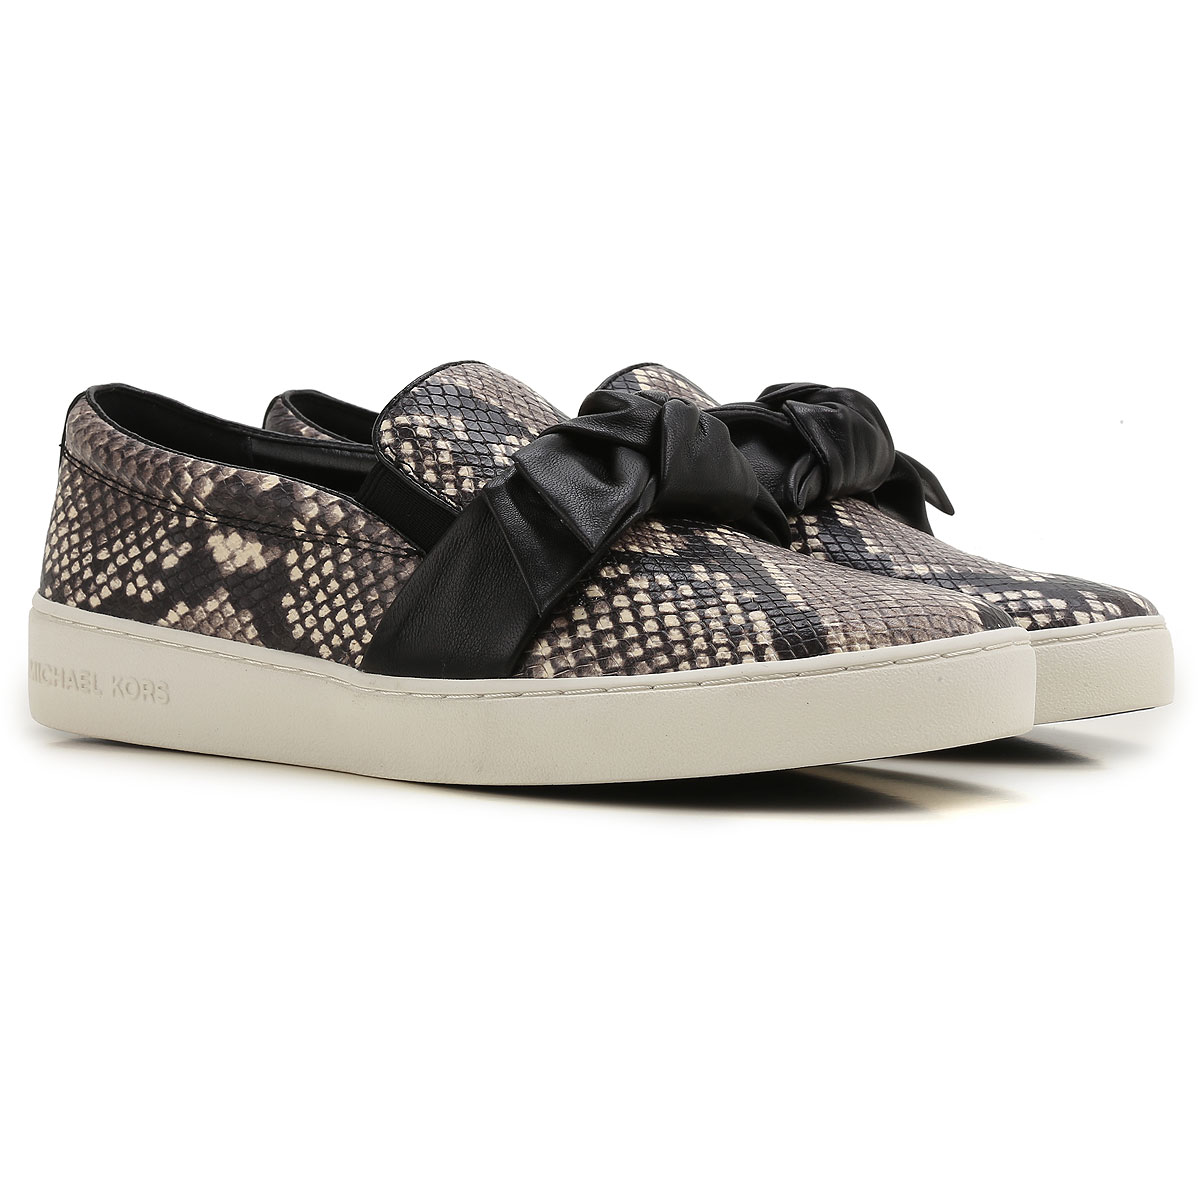 Michael Kors Slip on Sneakers for Women On Sale, Natural, Leather, 2017, 4.5